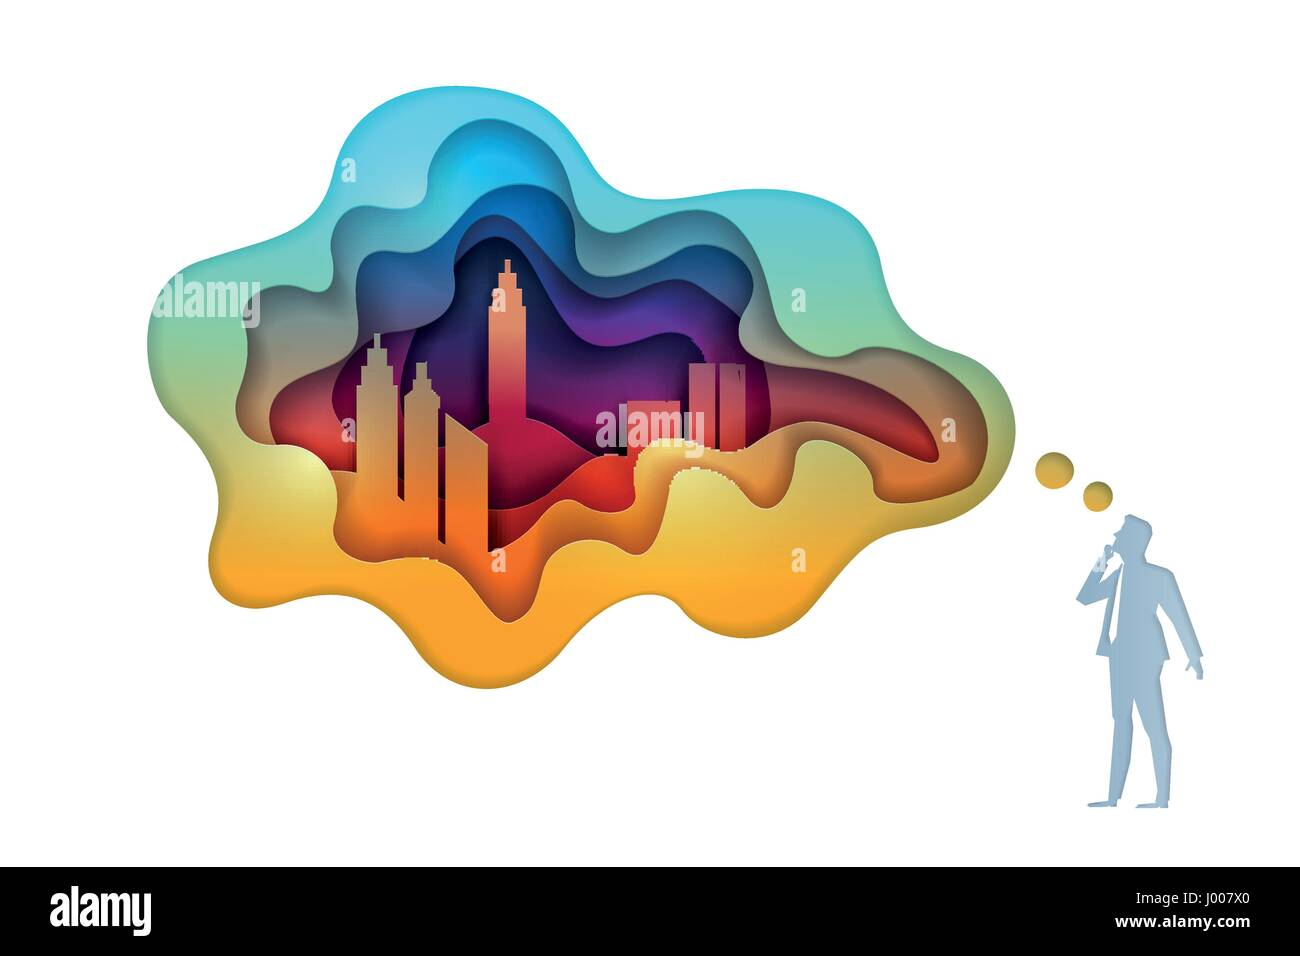 Business concept illustration. Businessman is thinking about city and real estate investment. Paper art style vector - Stock Vector